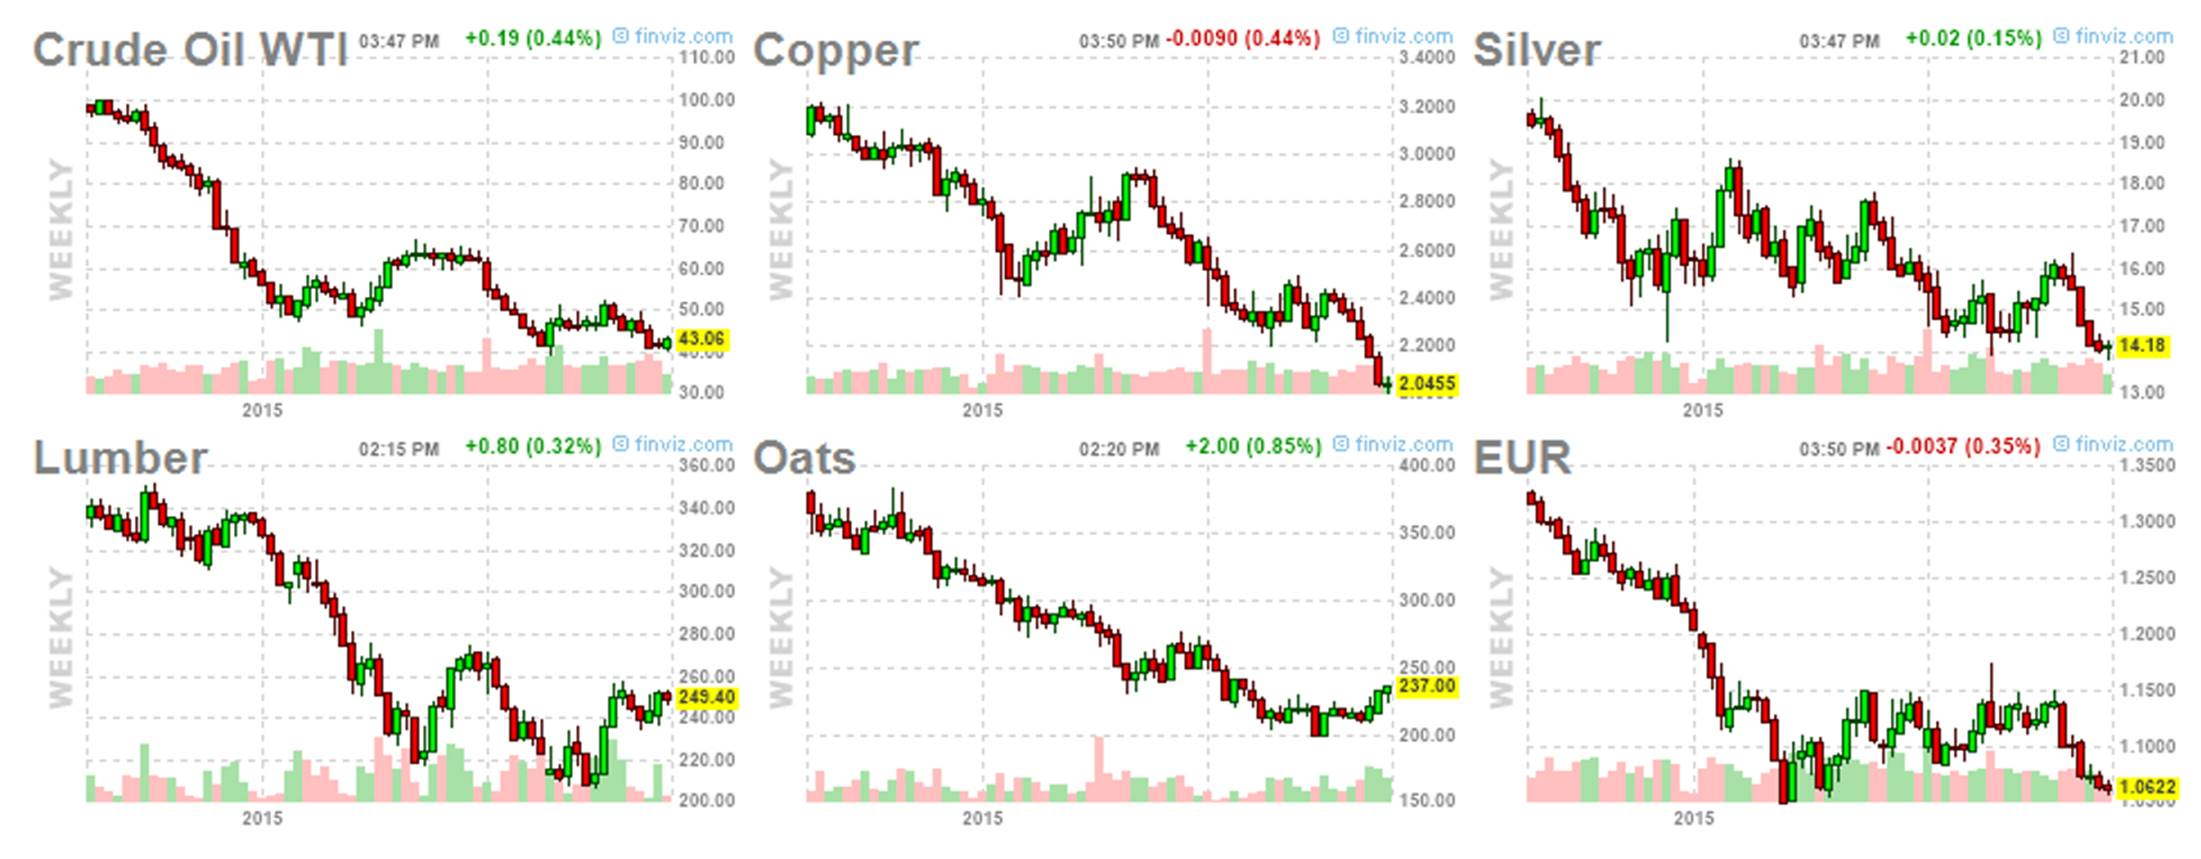 Dollar Prices Of Five Commodities Along With Cost One Euro Source Financial